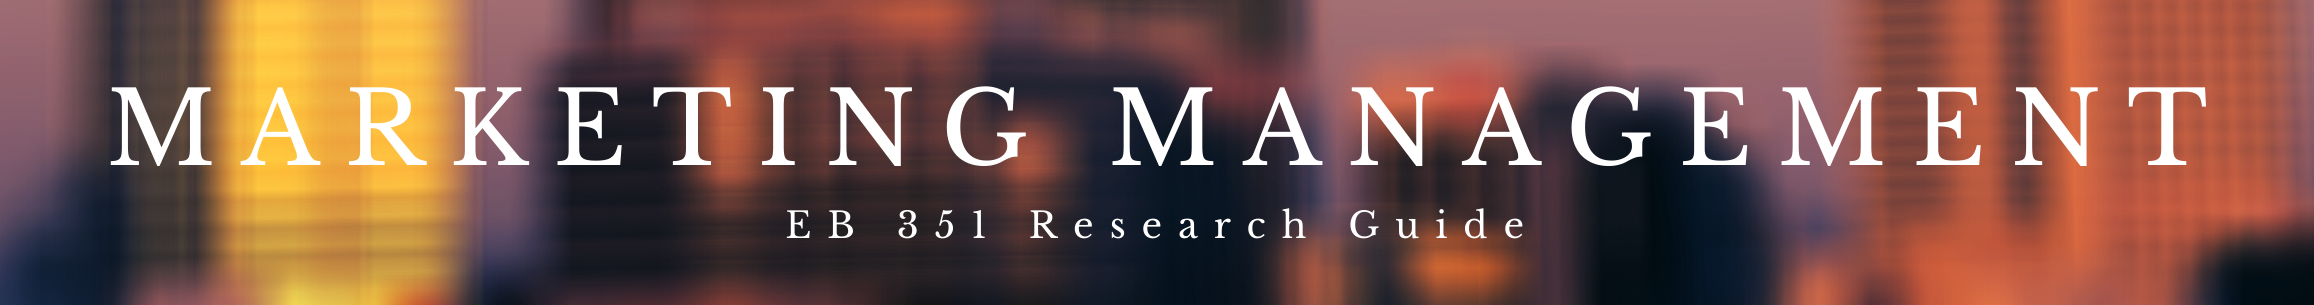 Marketing Management Research Guide header image